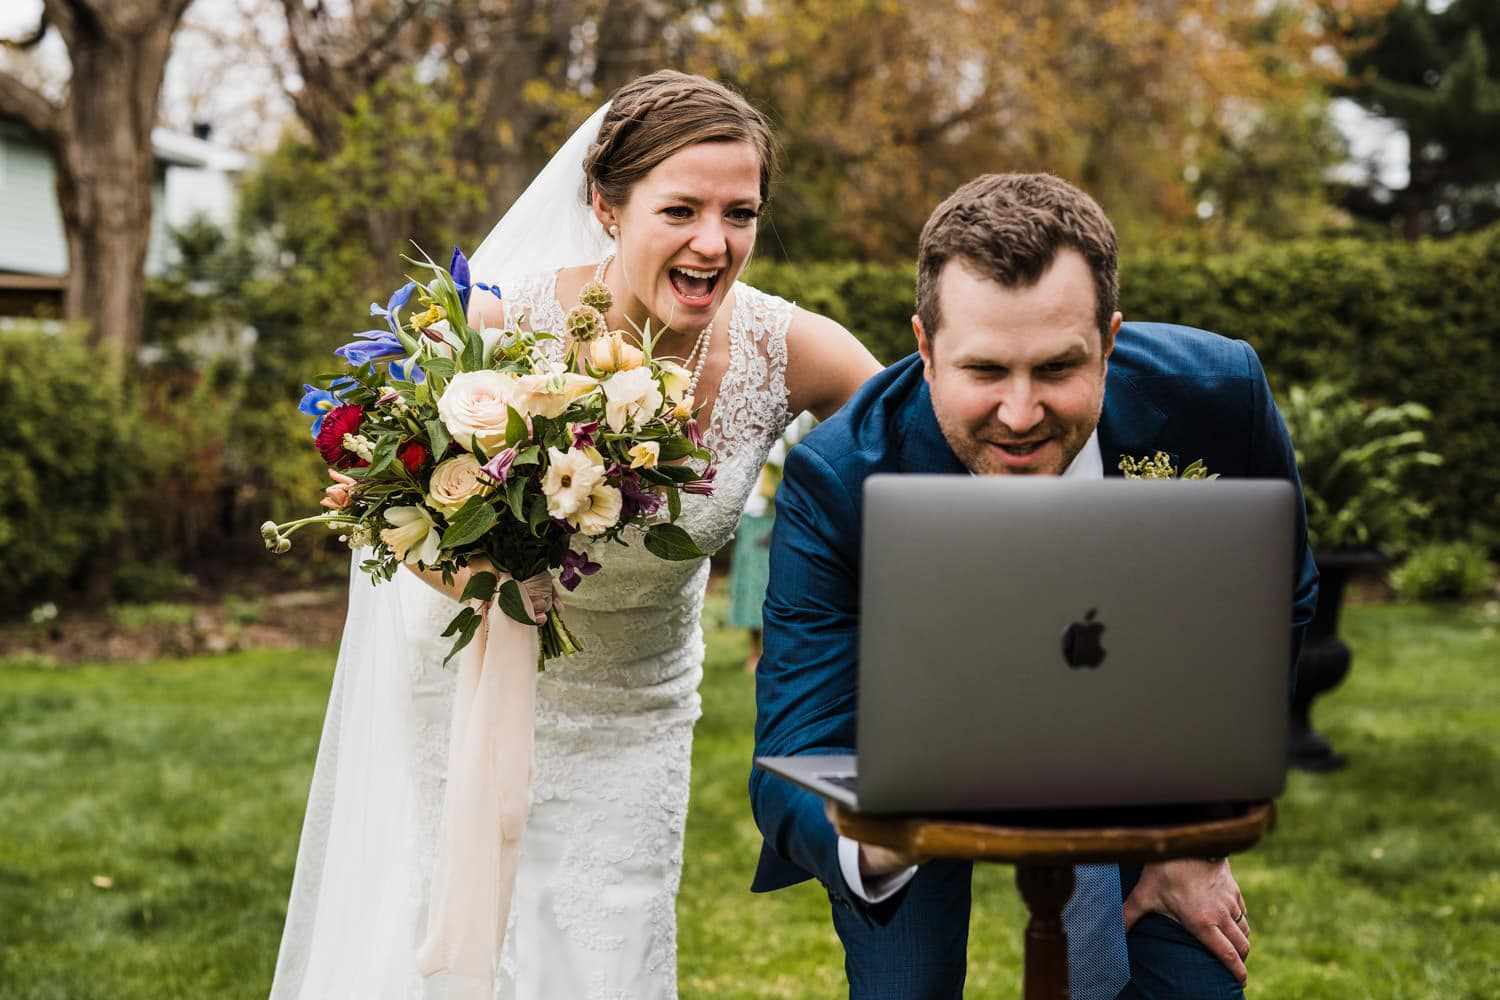 couple chats with their livestream guests after ceremony - intimate backyard wedding